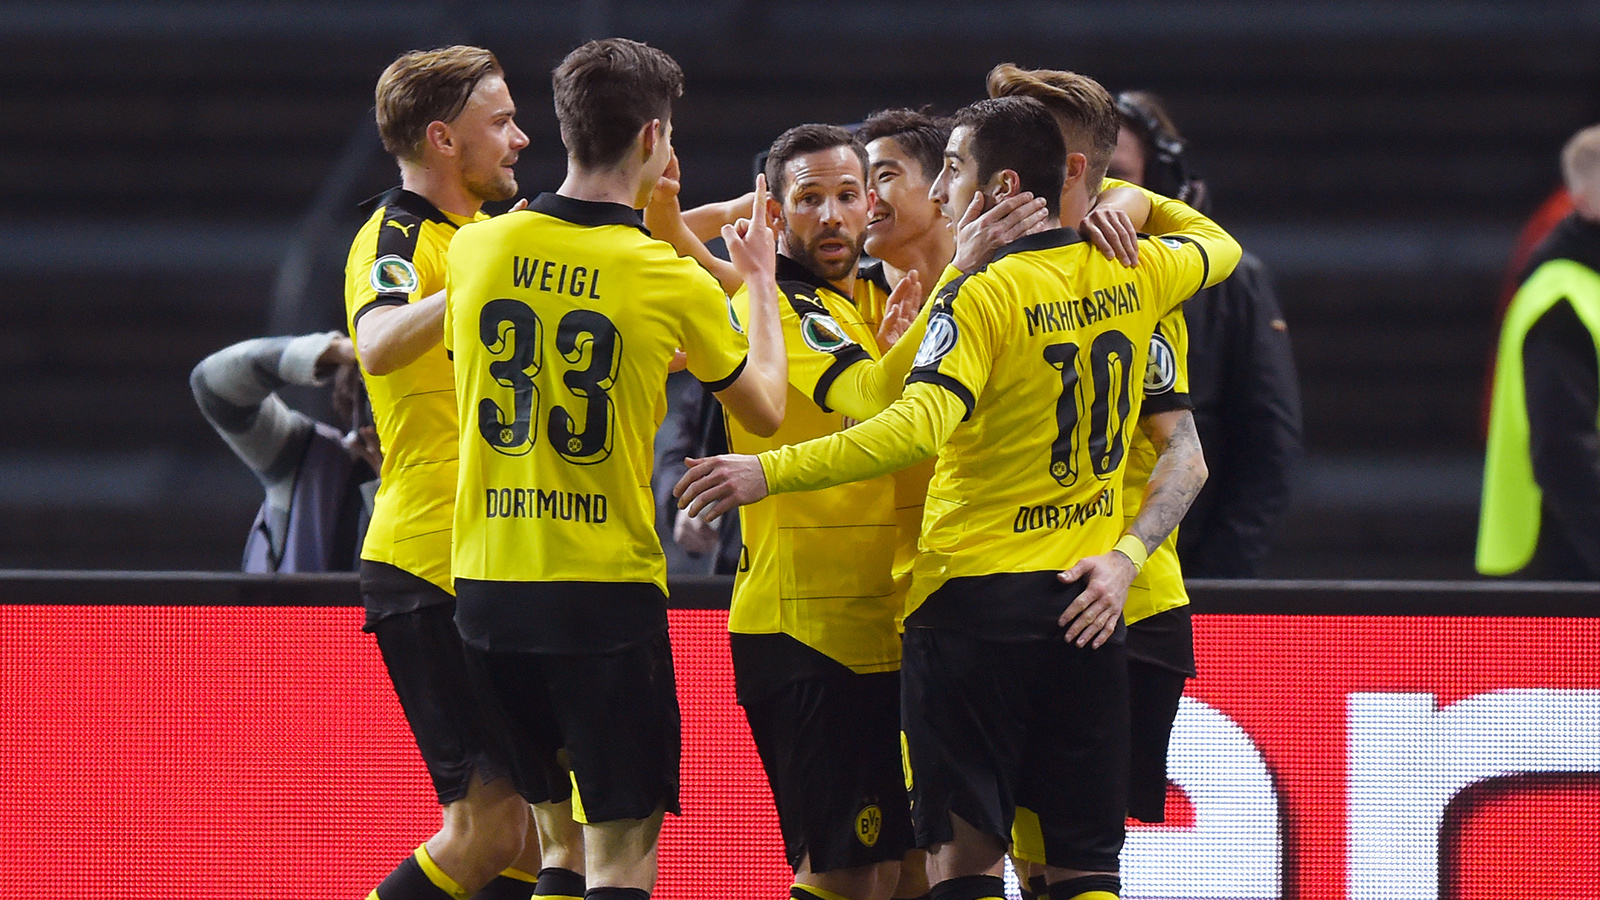 Dortmund trounce Hertha Berlin to set up final date vs. Bayern Munich